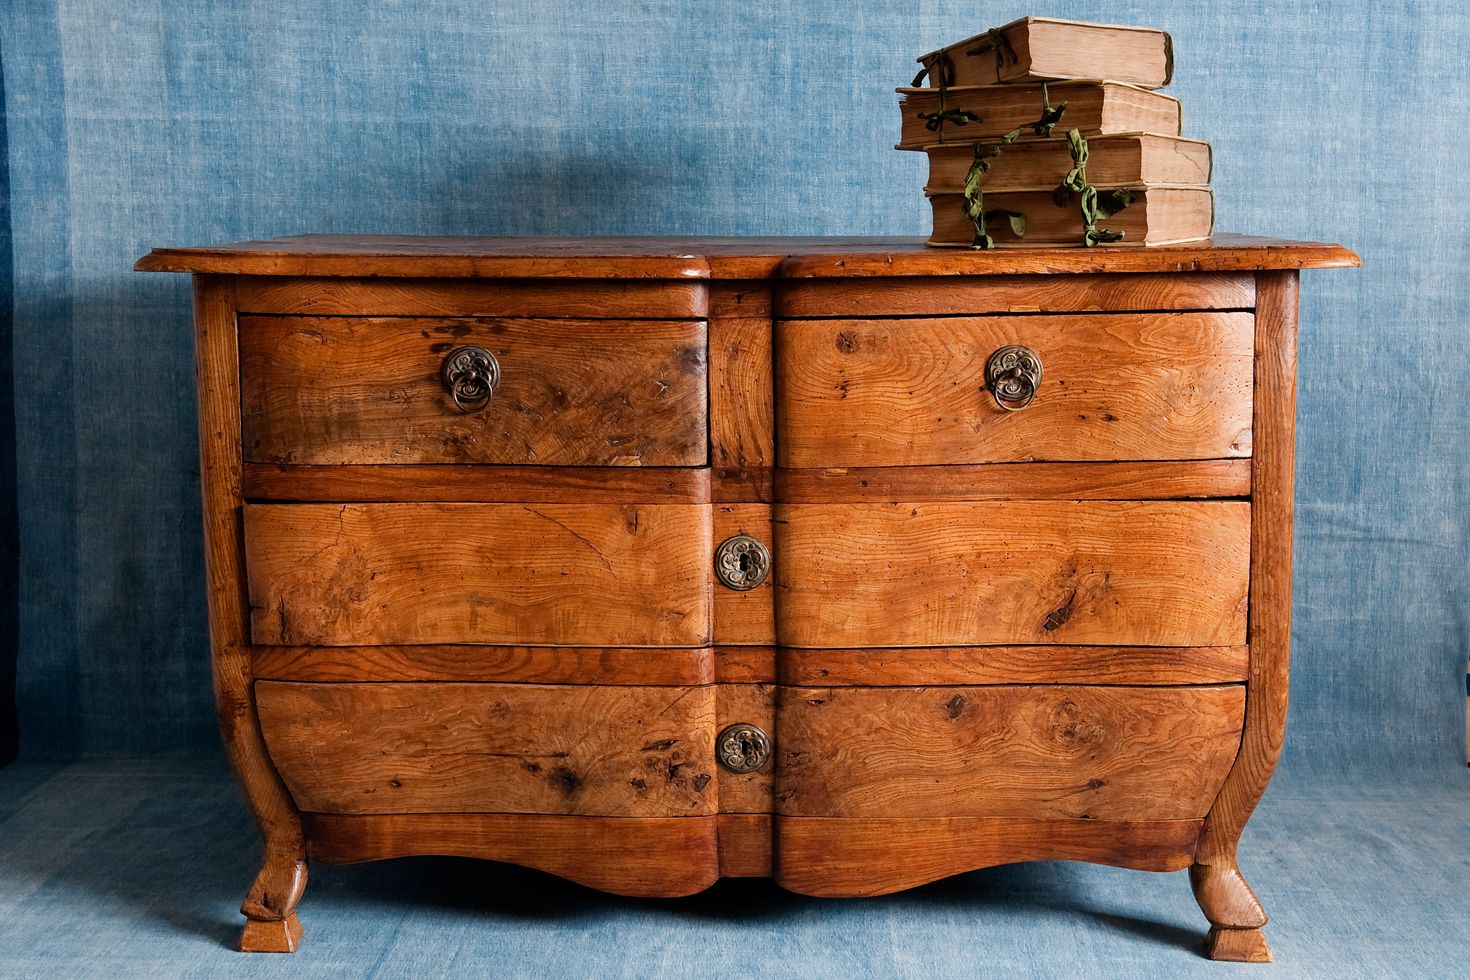 Dating Antique Furniture - Should You Restore And Refinish Antique Furniture?